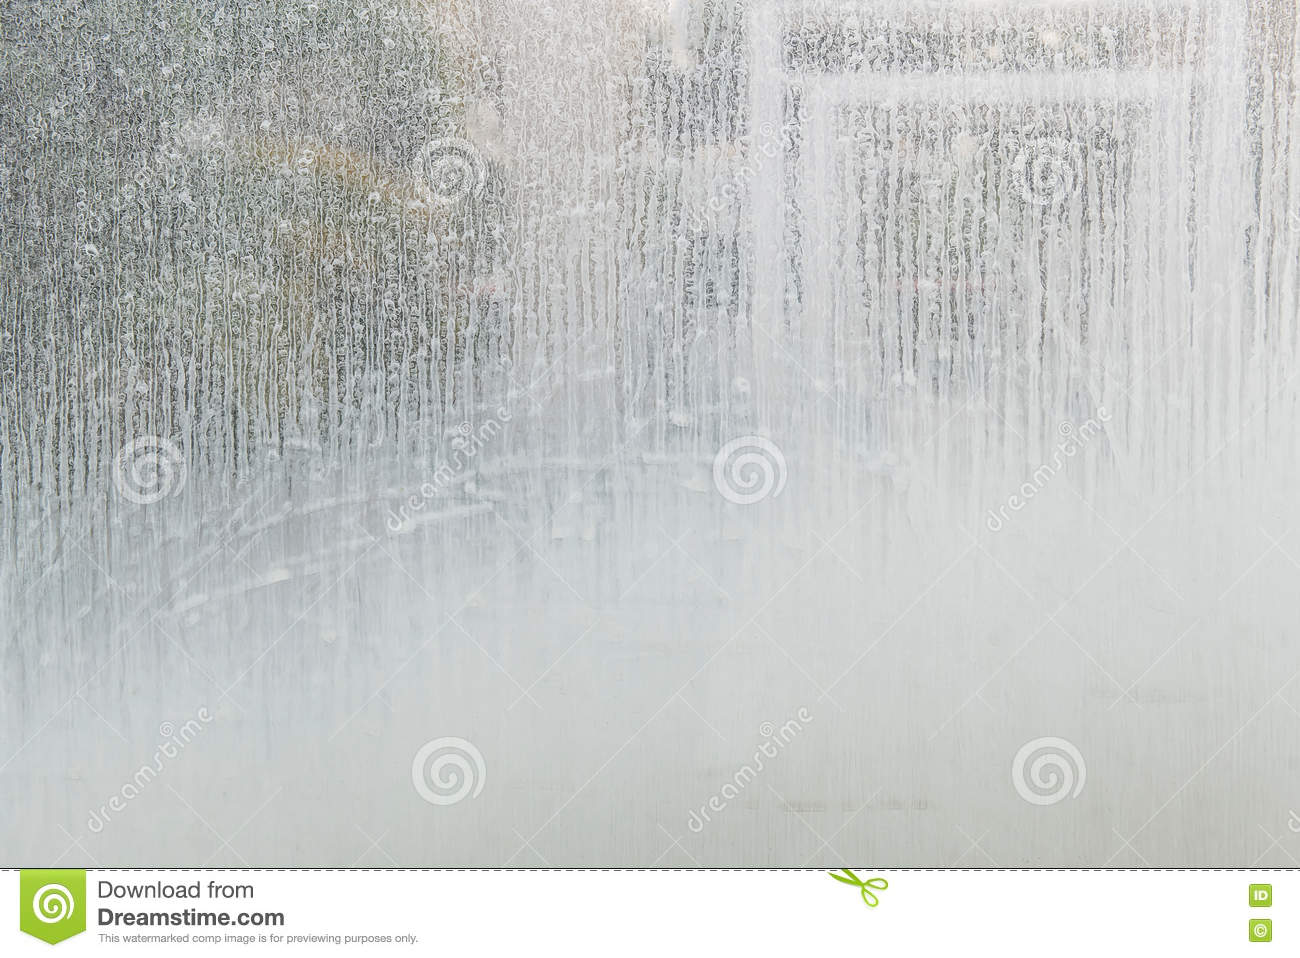 Water stains on walls in bathroom - Bathroom Dry Glass Wall Water